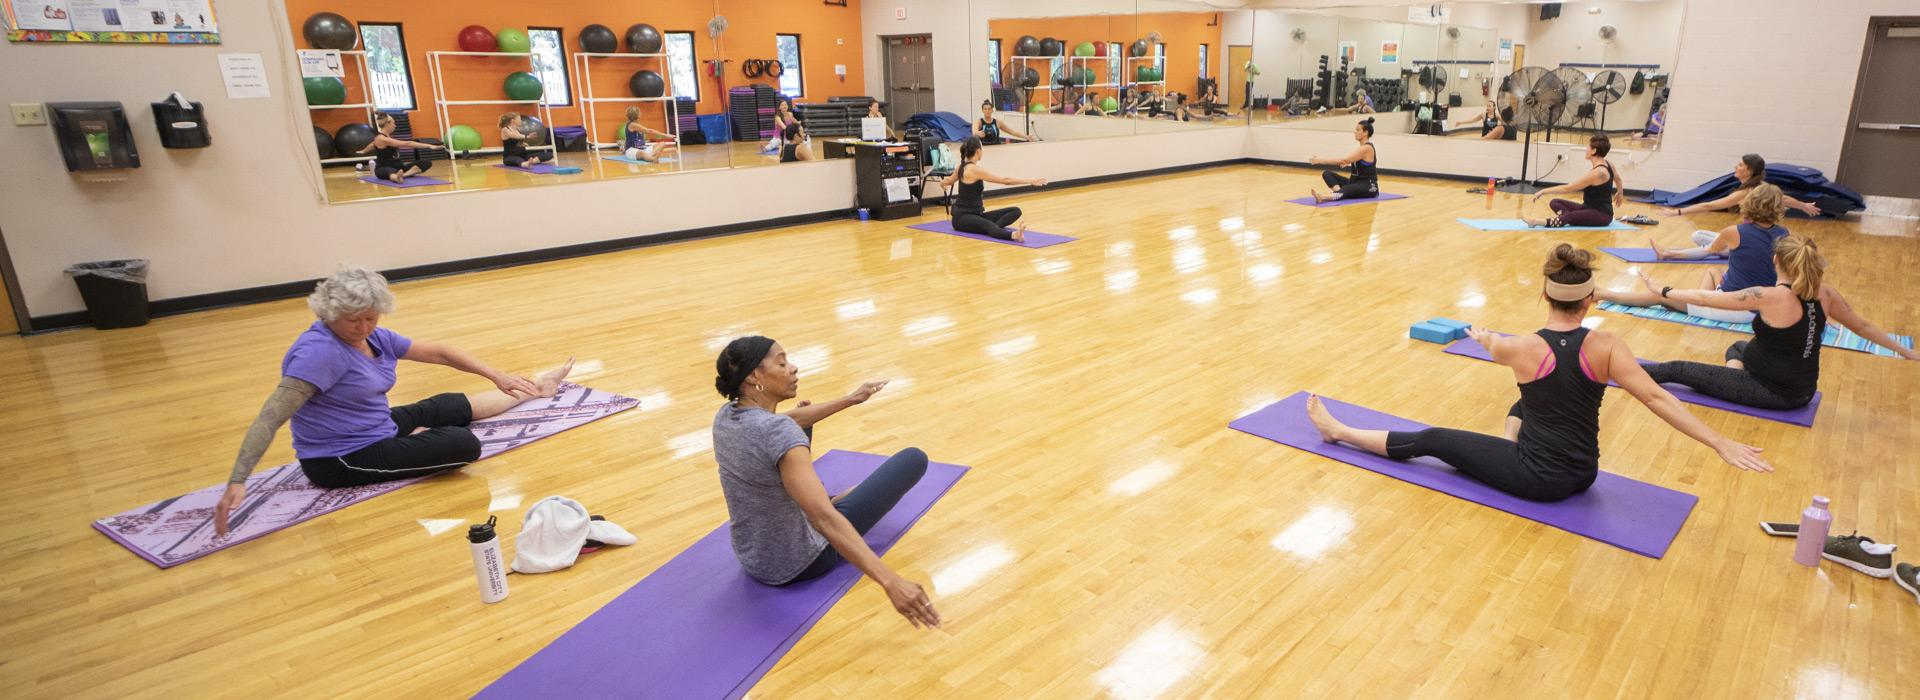 YMCA members participating in a Yoga class at the Albemarle Family YMCA